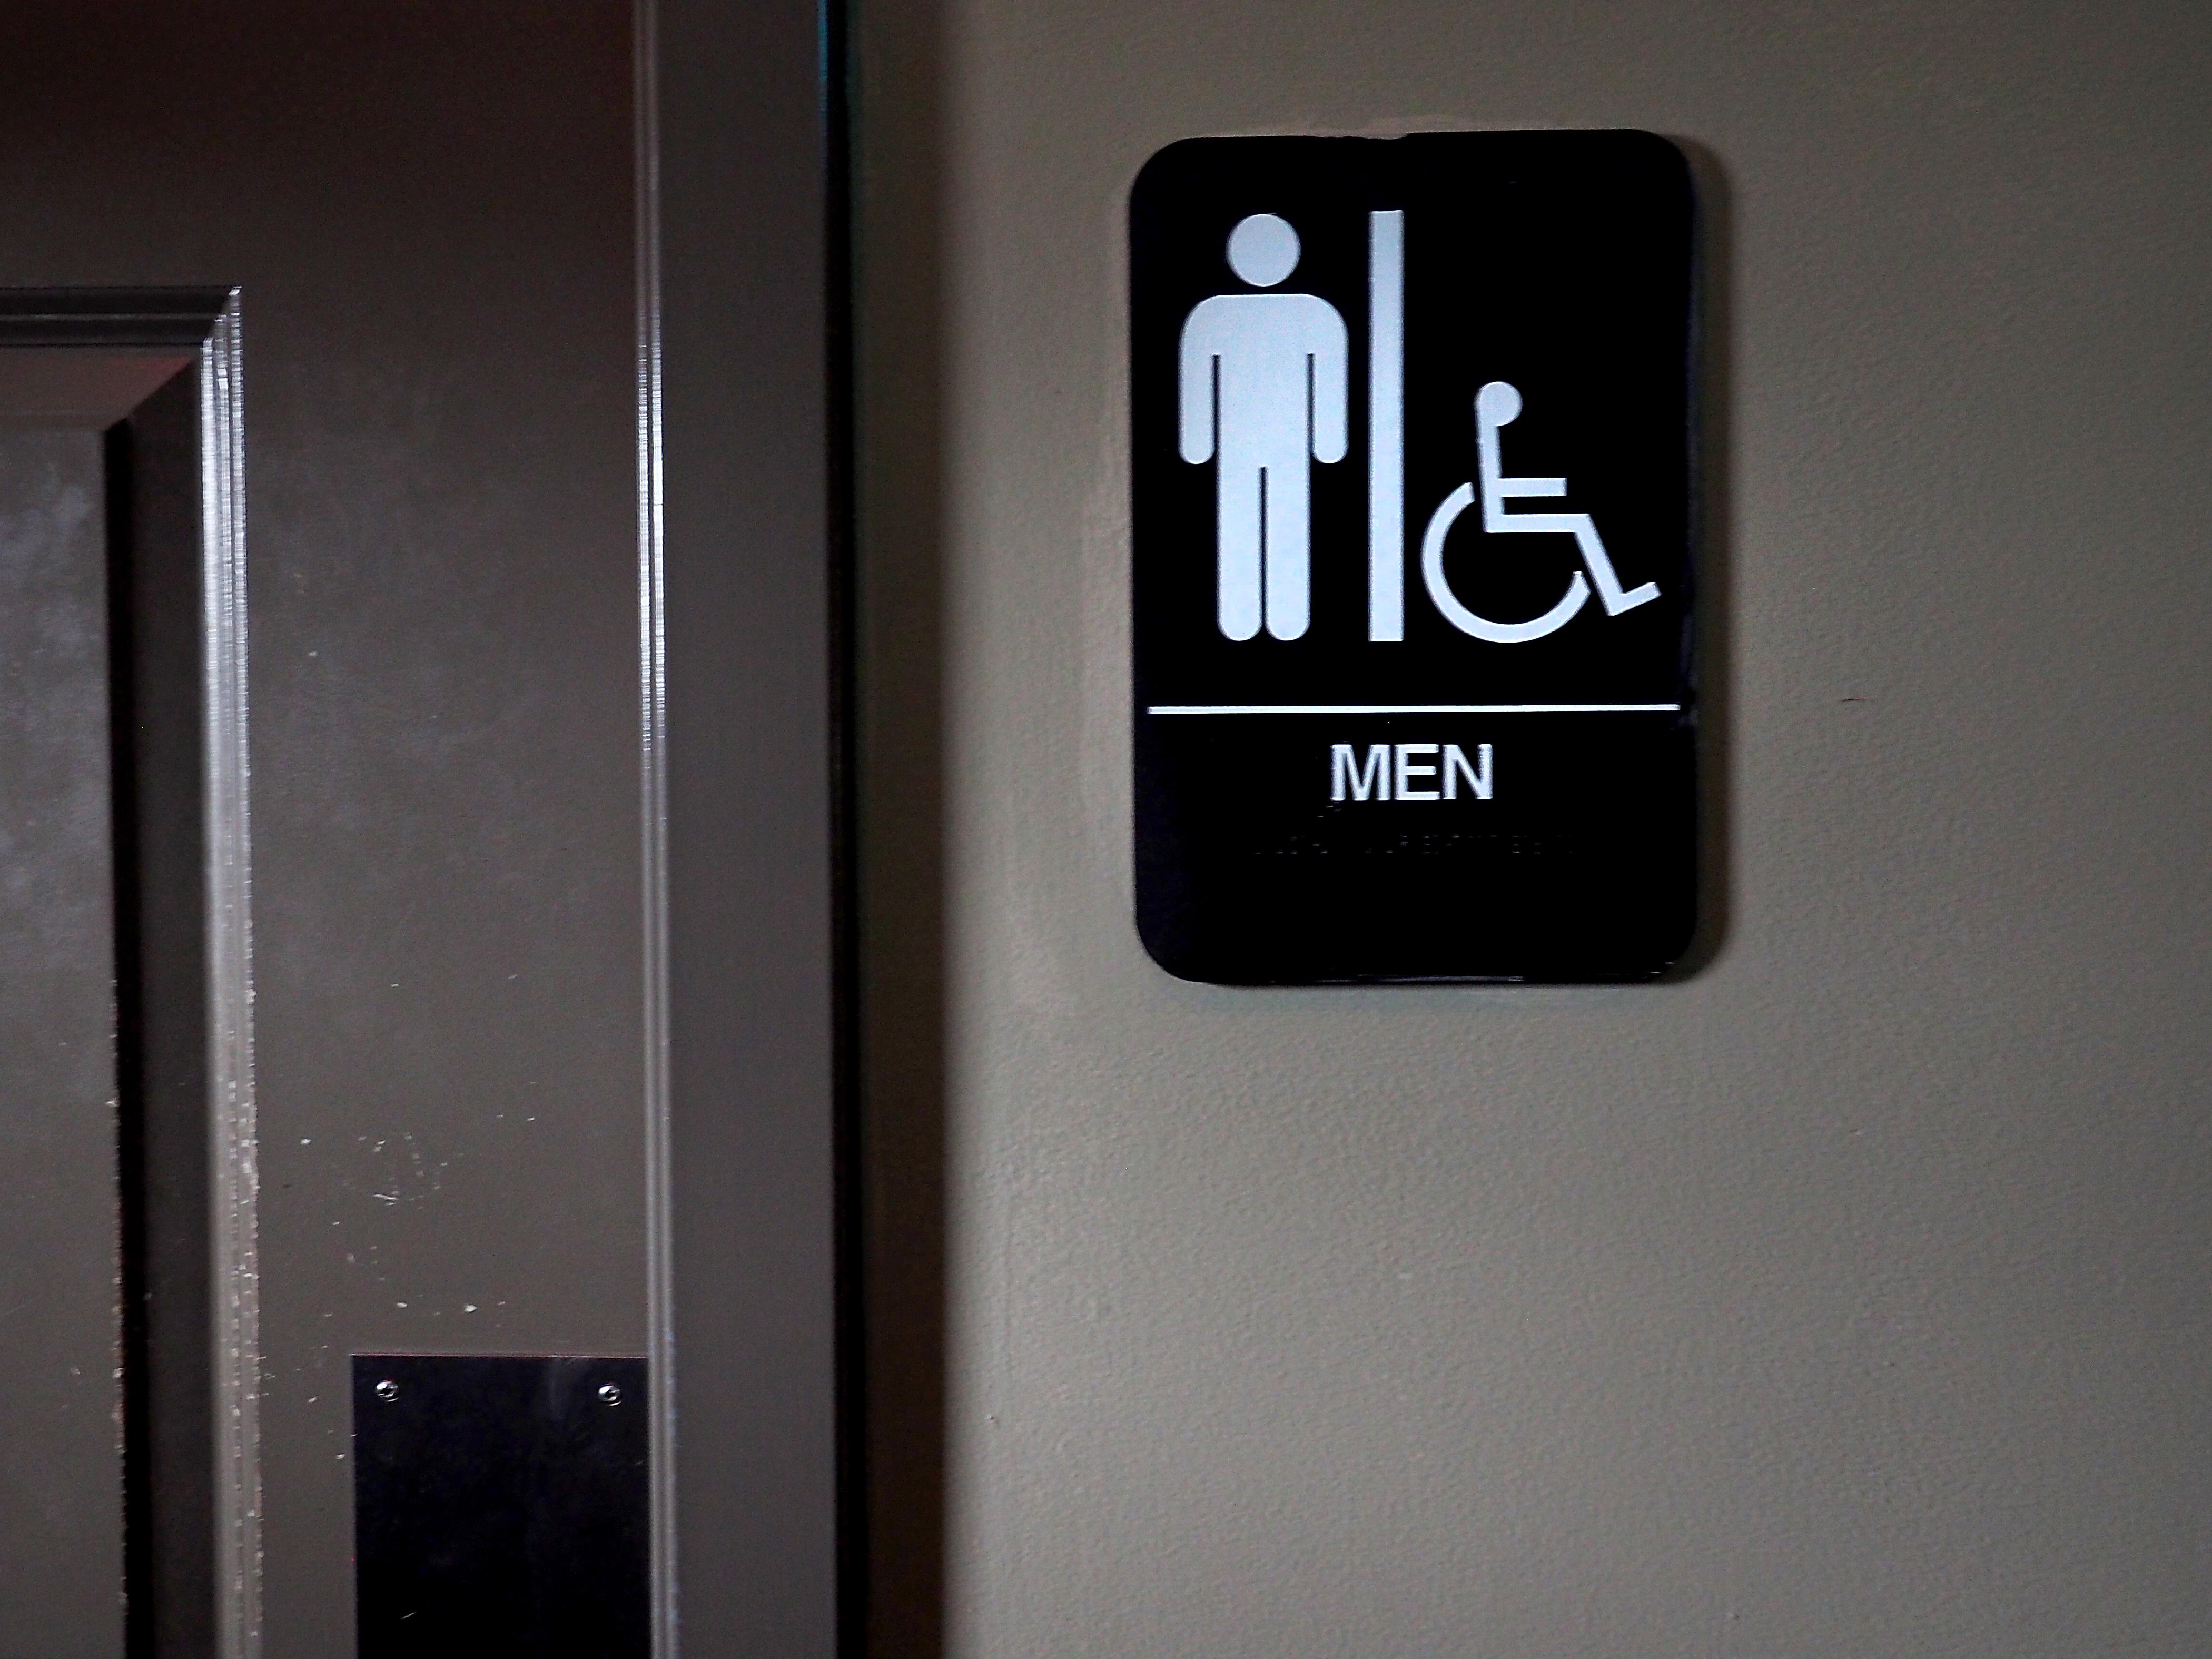 Texas bathroom bill unveiled ahead of 2017 session cbs - Which states have bathroom bills ...